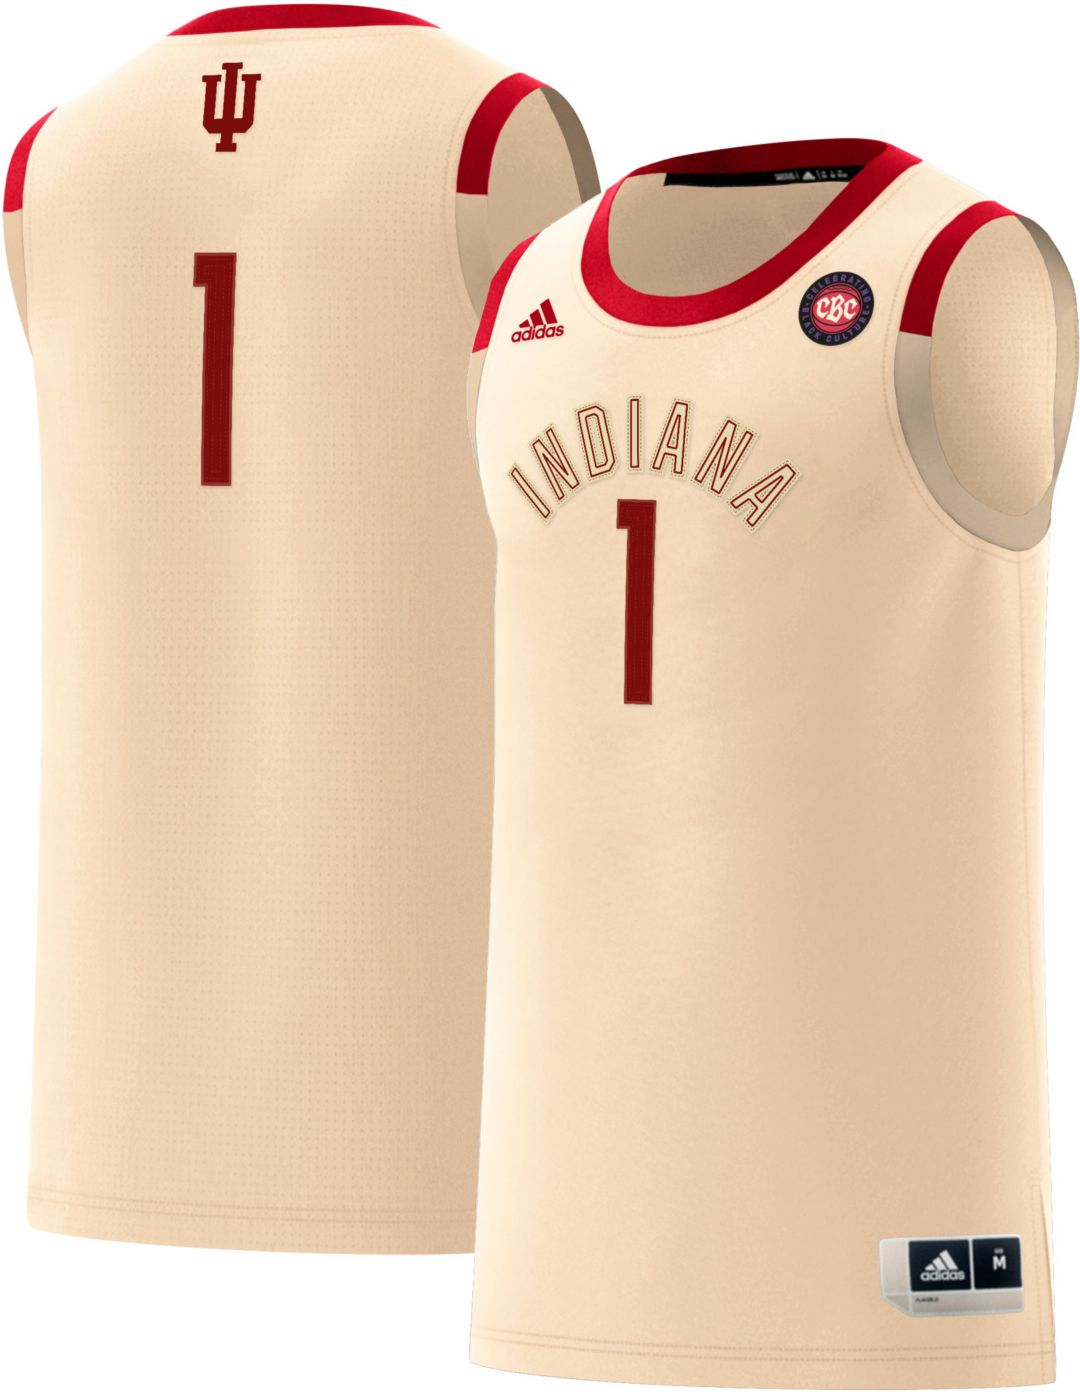 finest selection e8ccf 1165e adidas Men's Indiana Hoosiers #1 'Celebrating Black Culture' Replica  Basketball Jersey